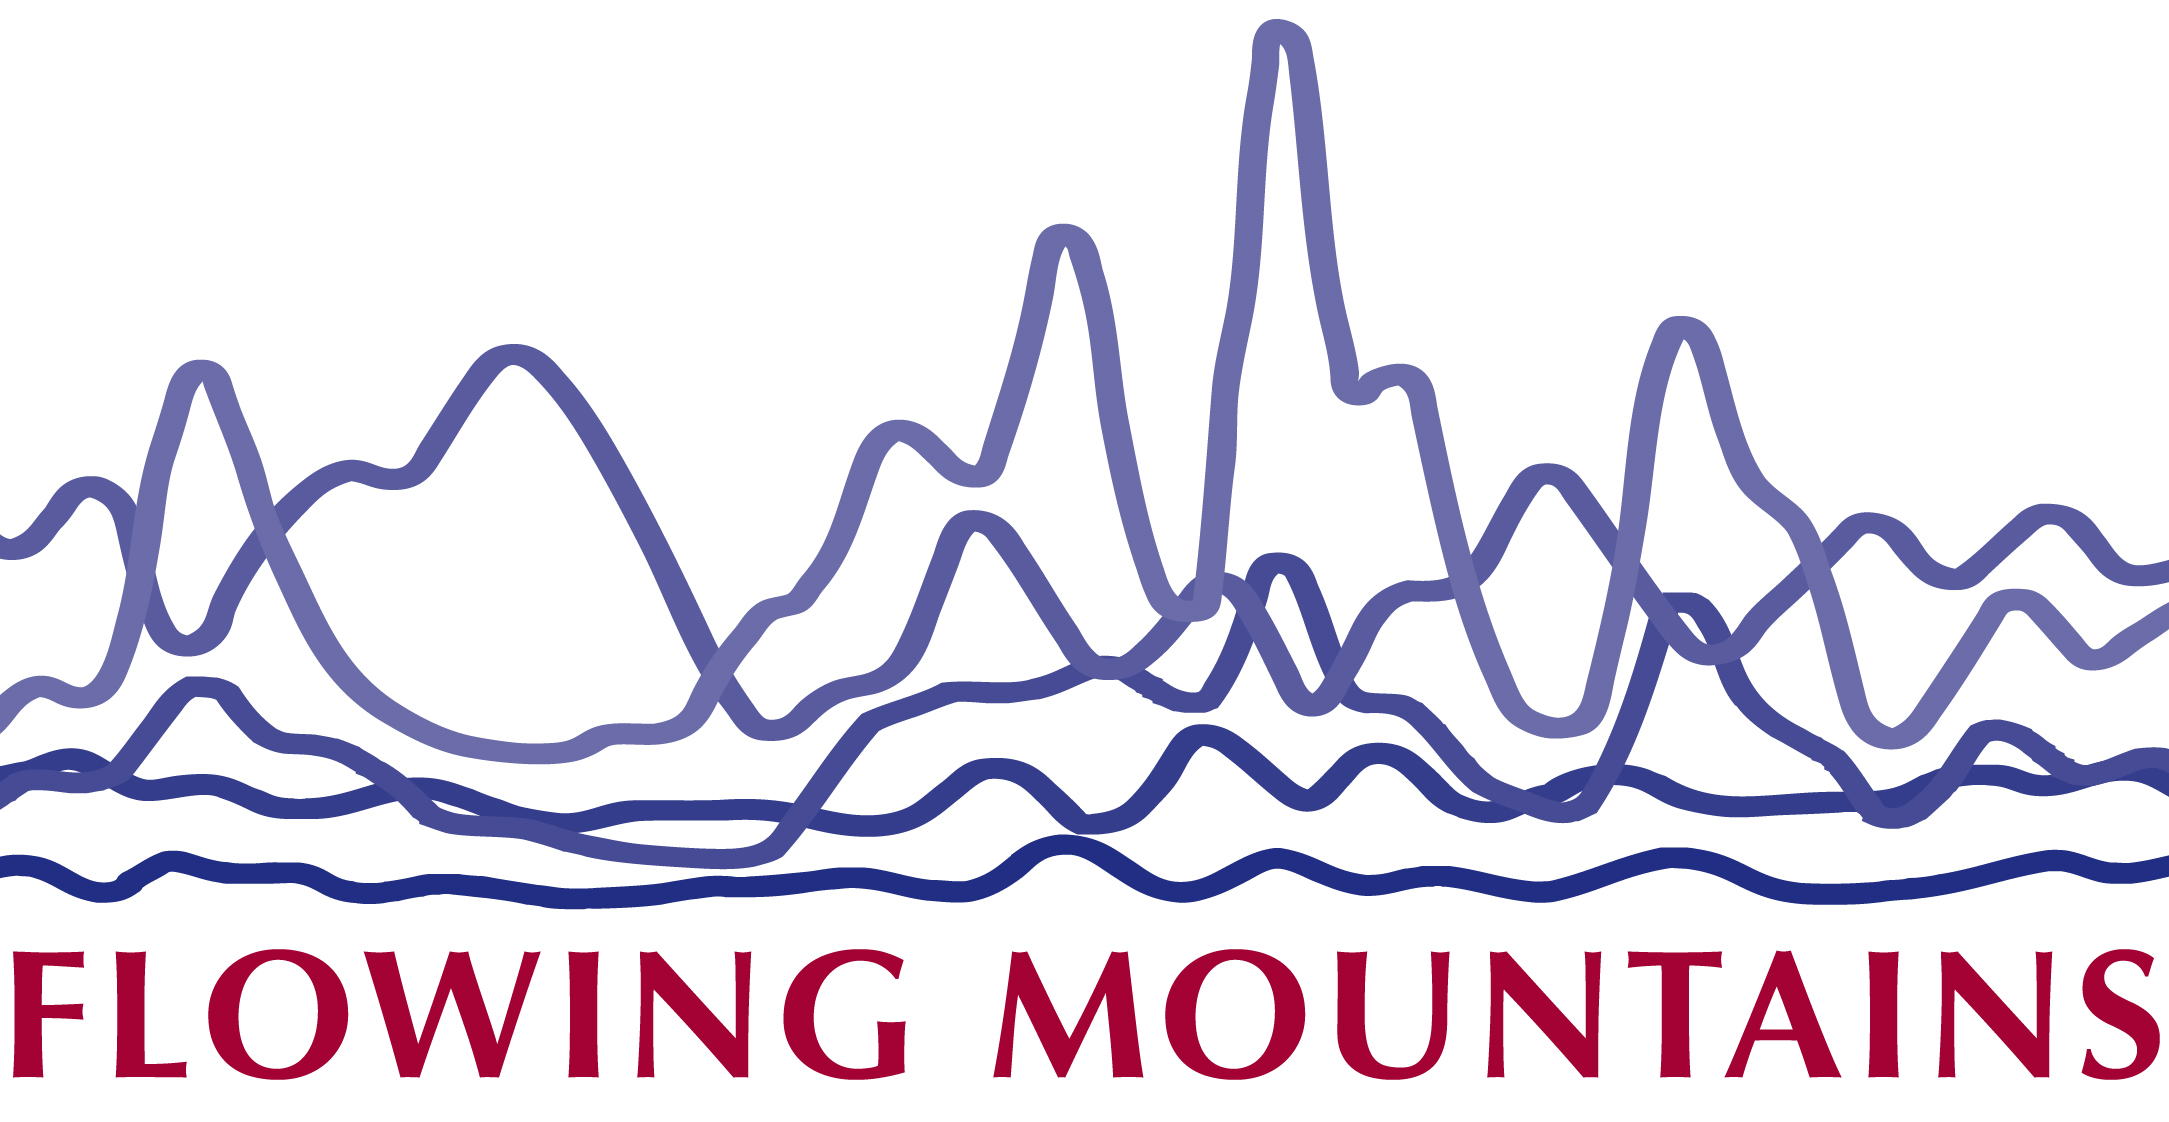 Flowing Mountains